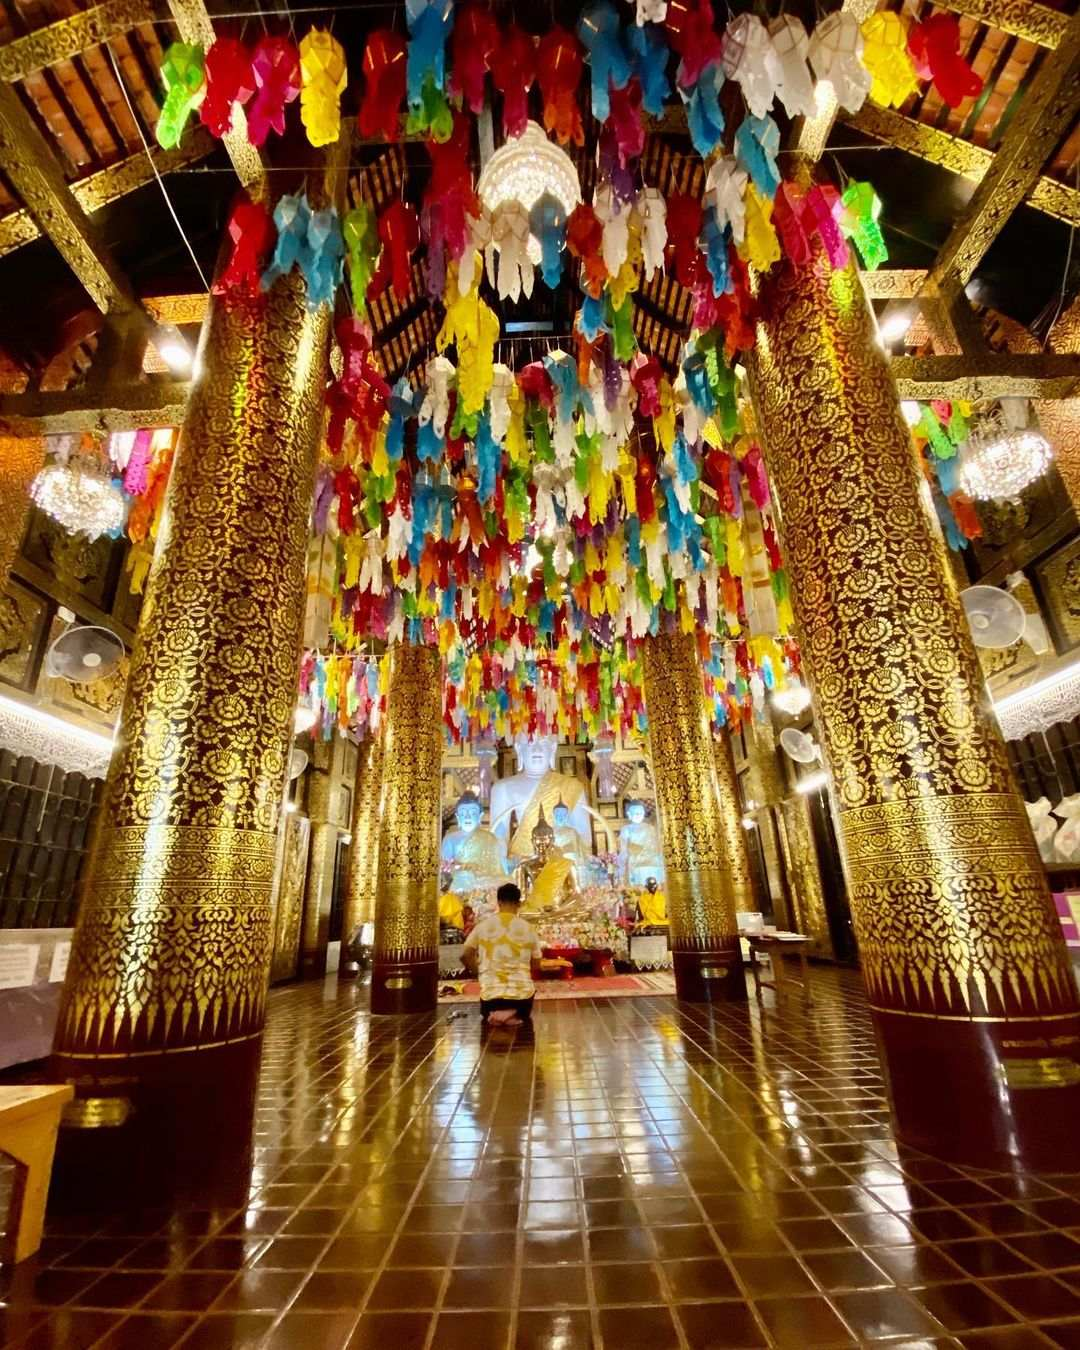 A decorated temple during Yee Peng Festival 2020 in Chiang Mai, Thailand